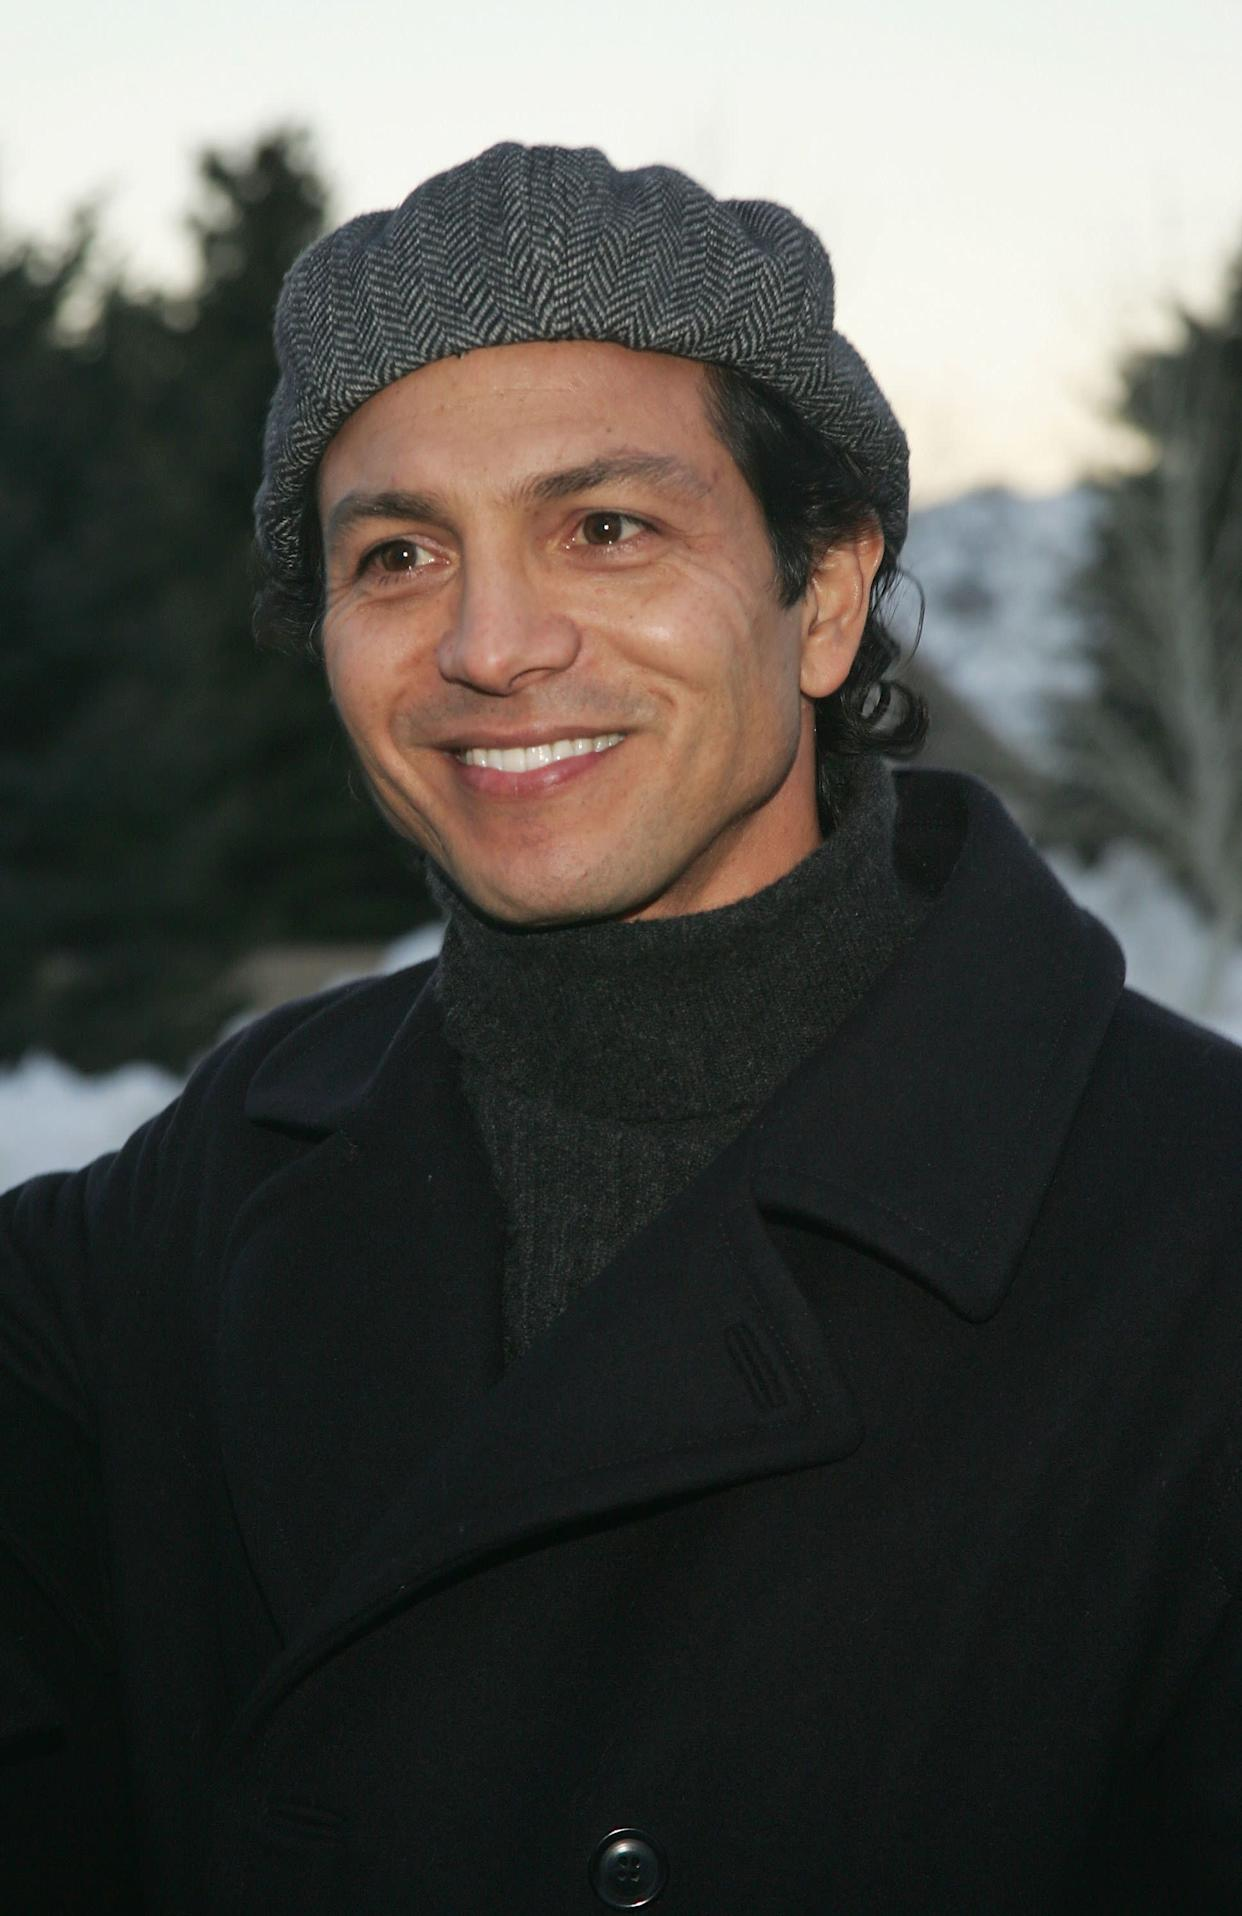 """The actor wears a turtleneck for the premiere of the film """"Thumbsucker"""" in January 2005."""